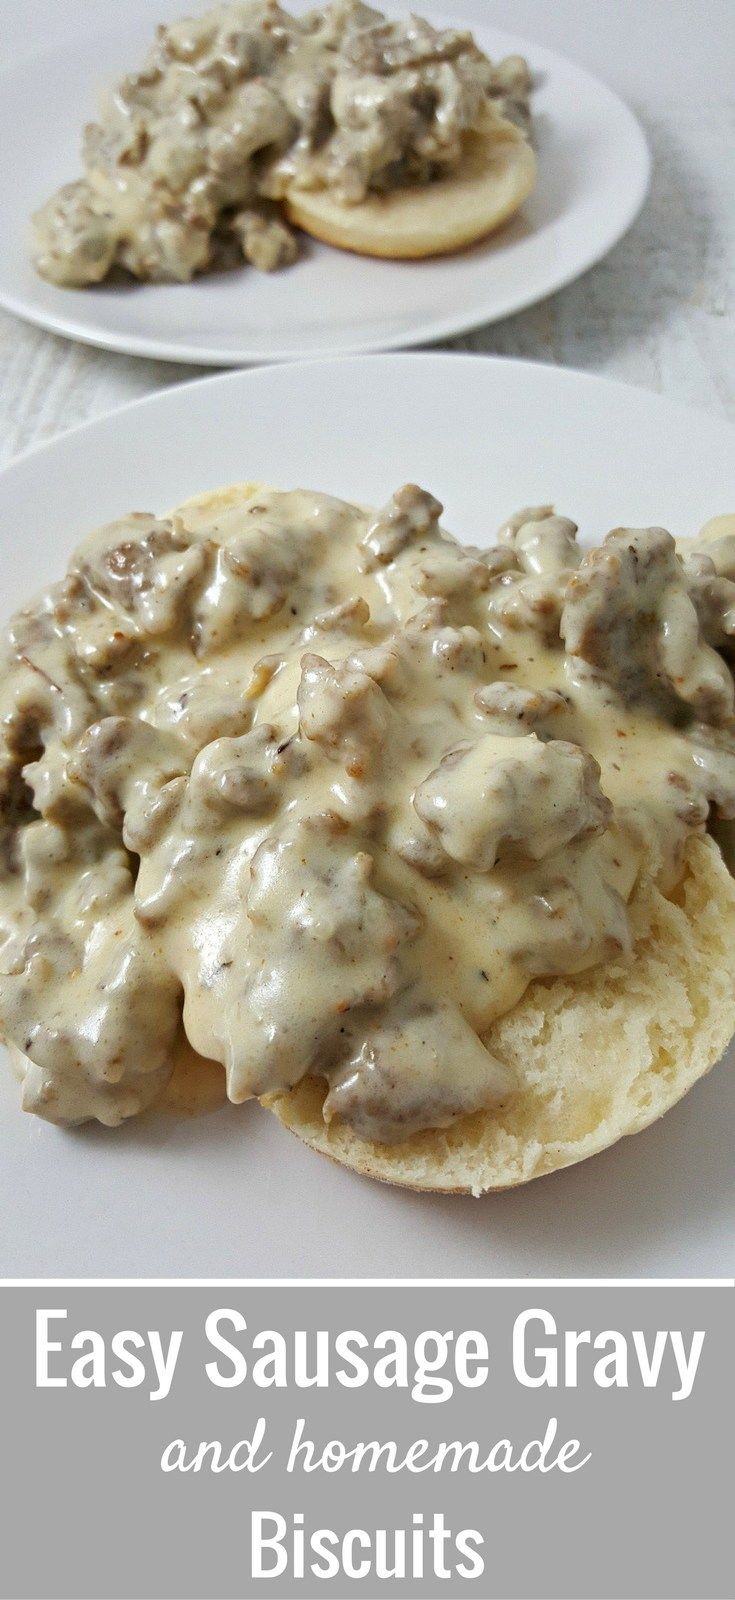 Easy Sausage Gravy and Homemade Biscuits Recipe for Two has southern-style sausage gravy and flaky homemade biscuits with a hint of honey. This dish great for breakfast or dinner and is ready in just 30 minutes. If you want more heat you can add a pinch of cayenne.